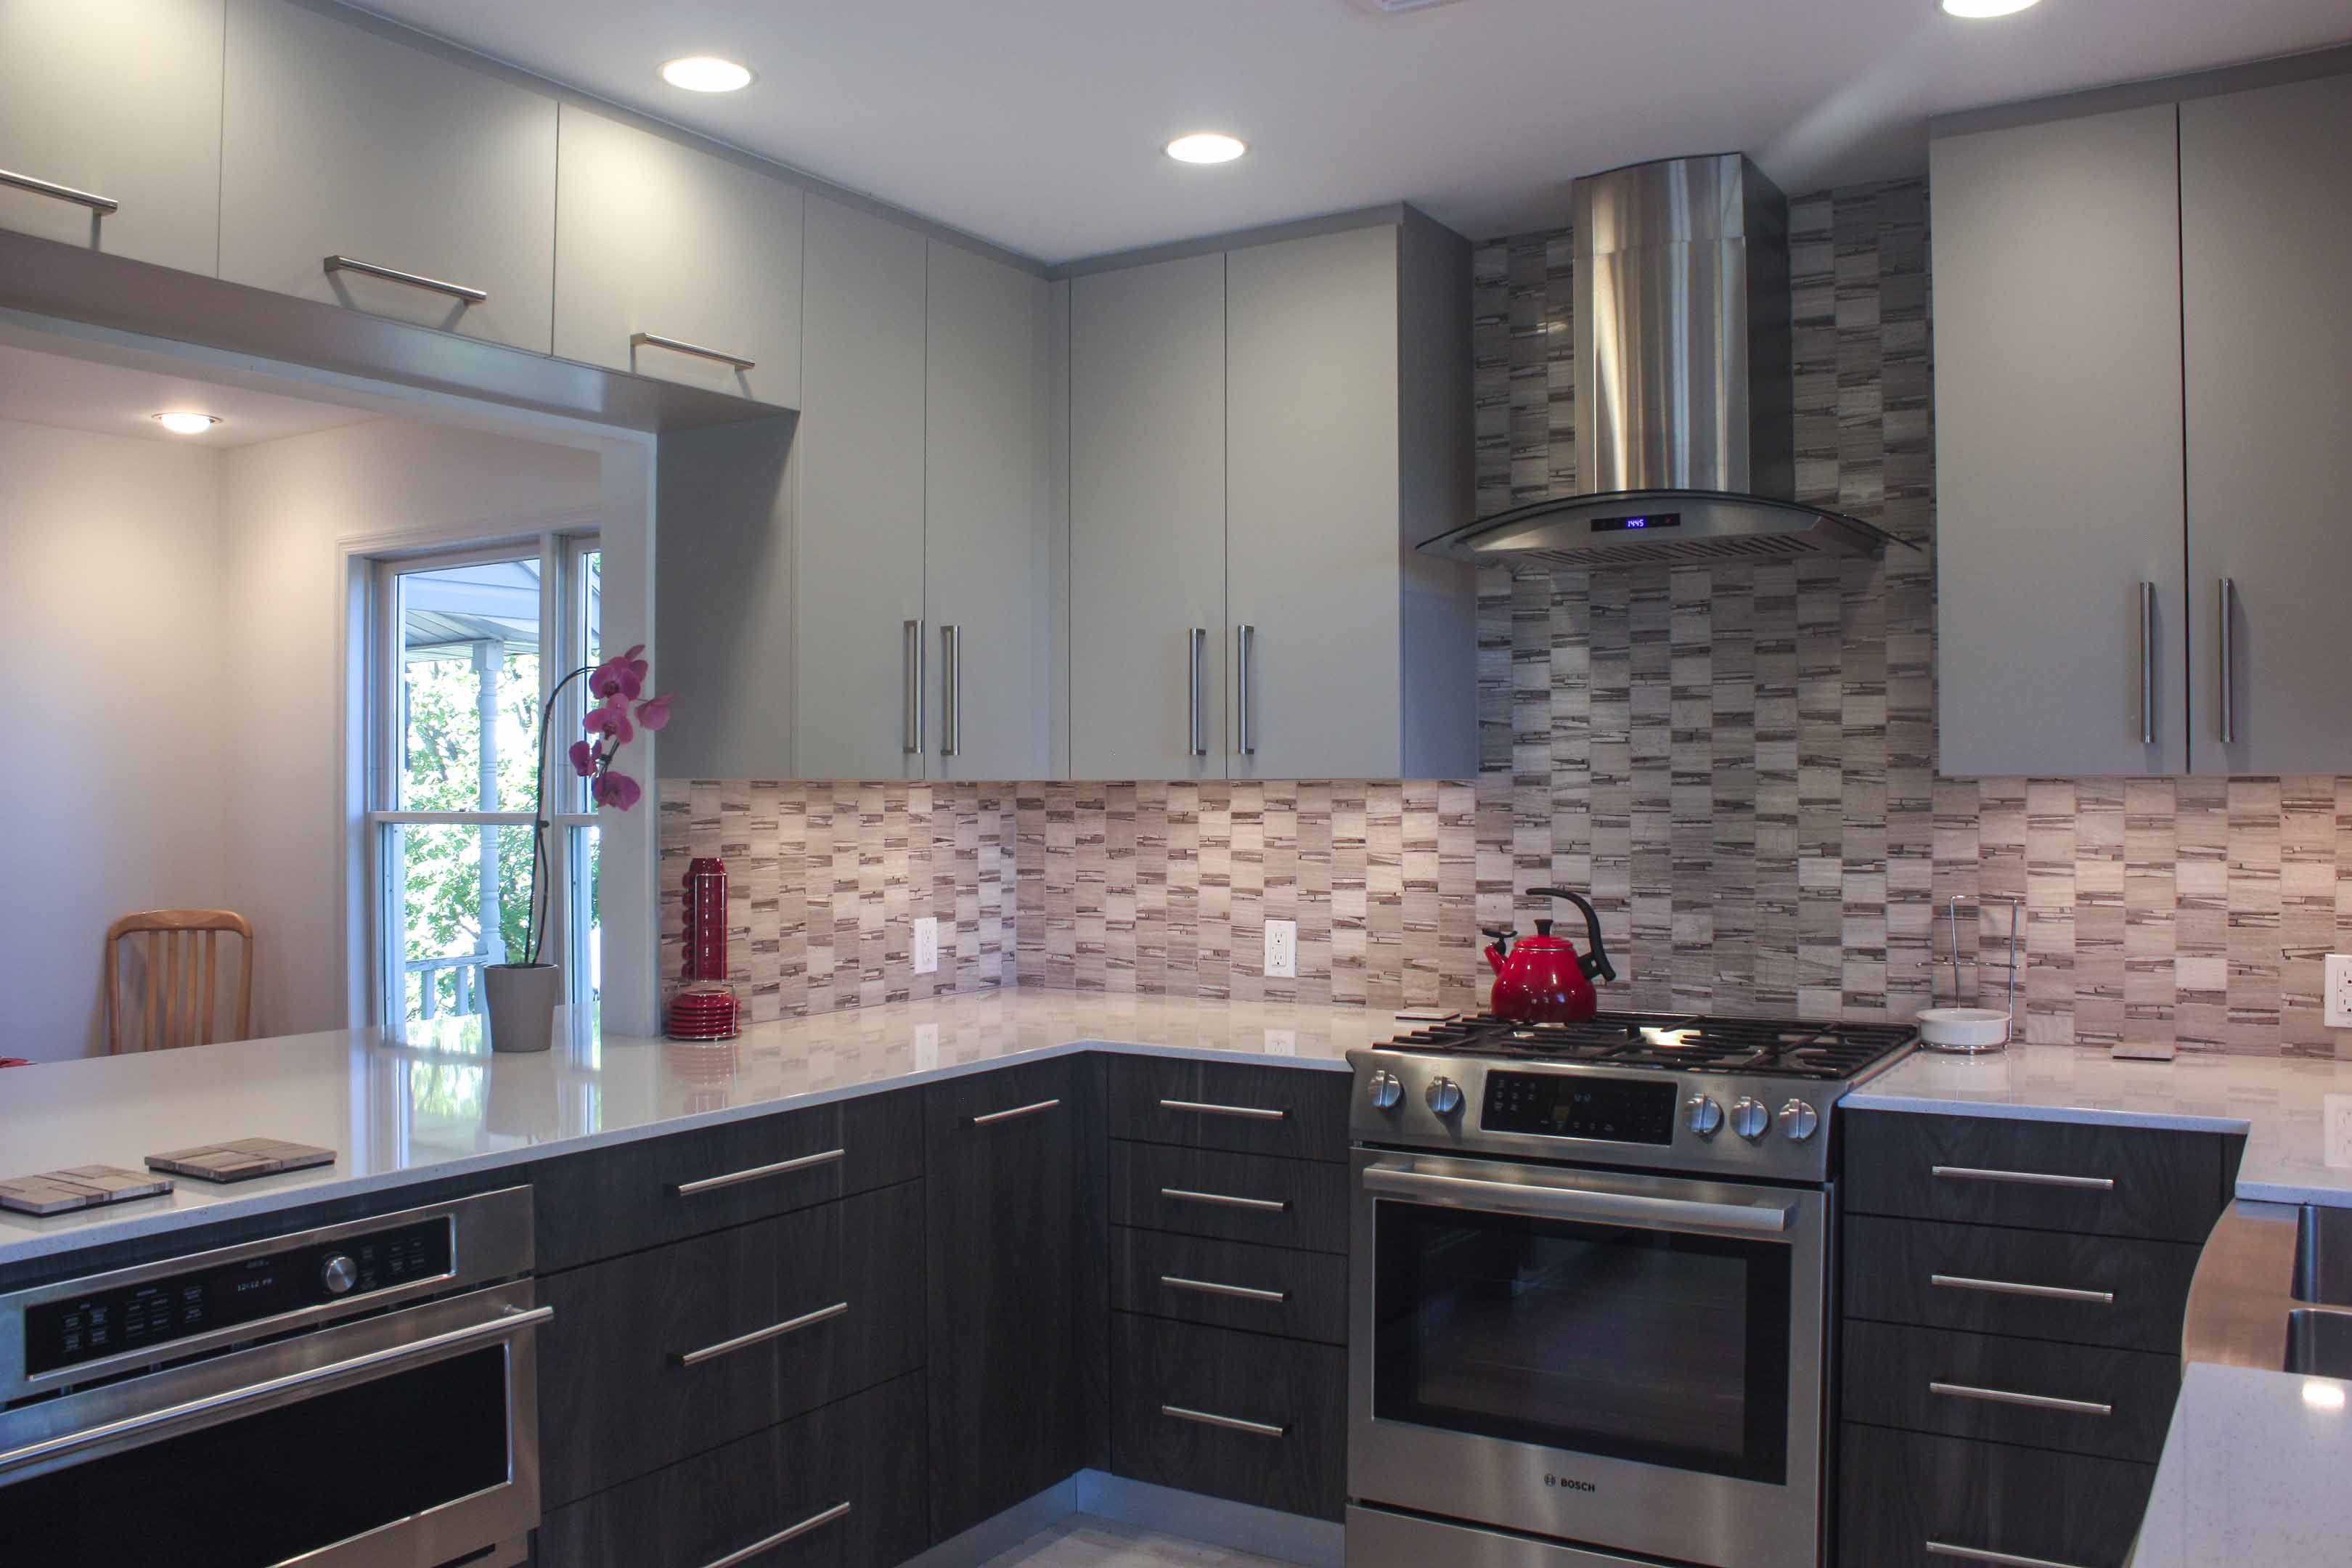 kitchen and dining area by joan bigg kitchen choreography contemporary kitchen design rockland county ny